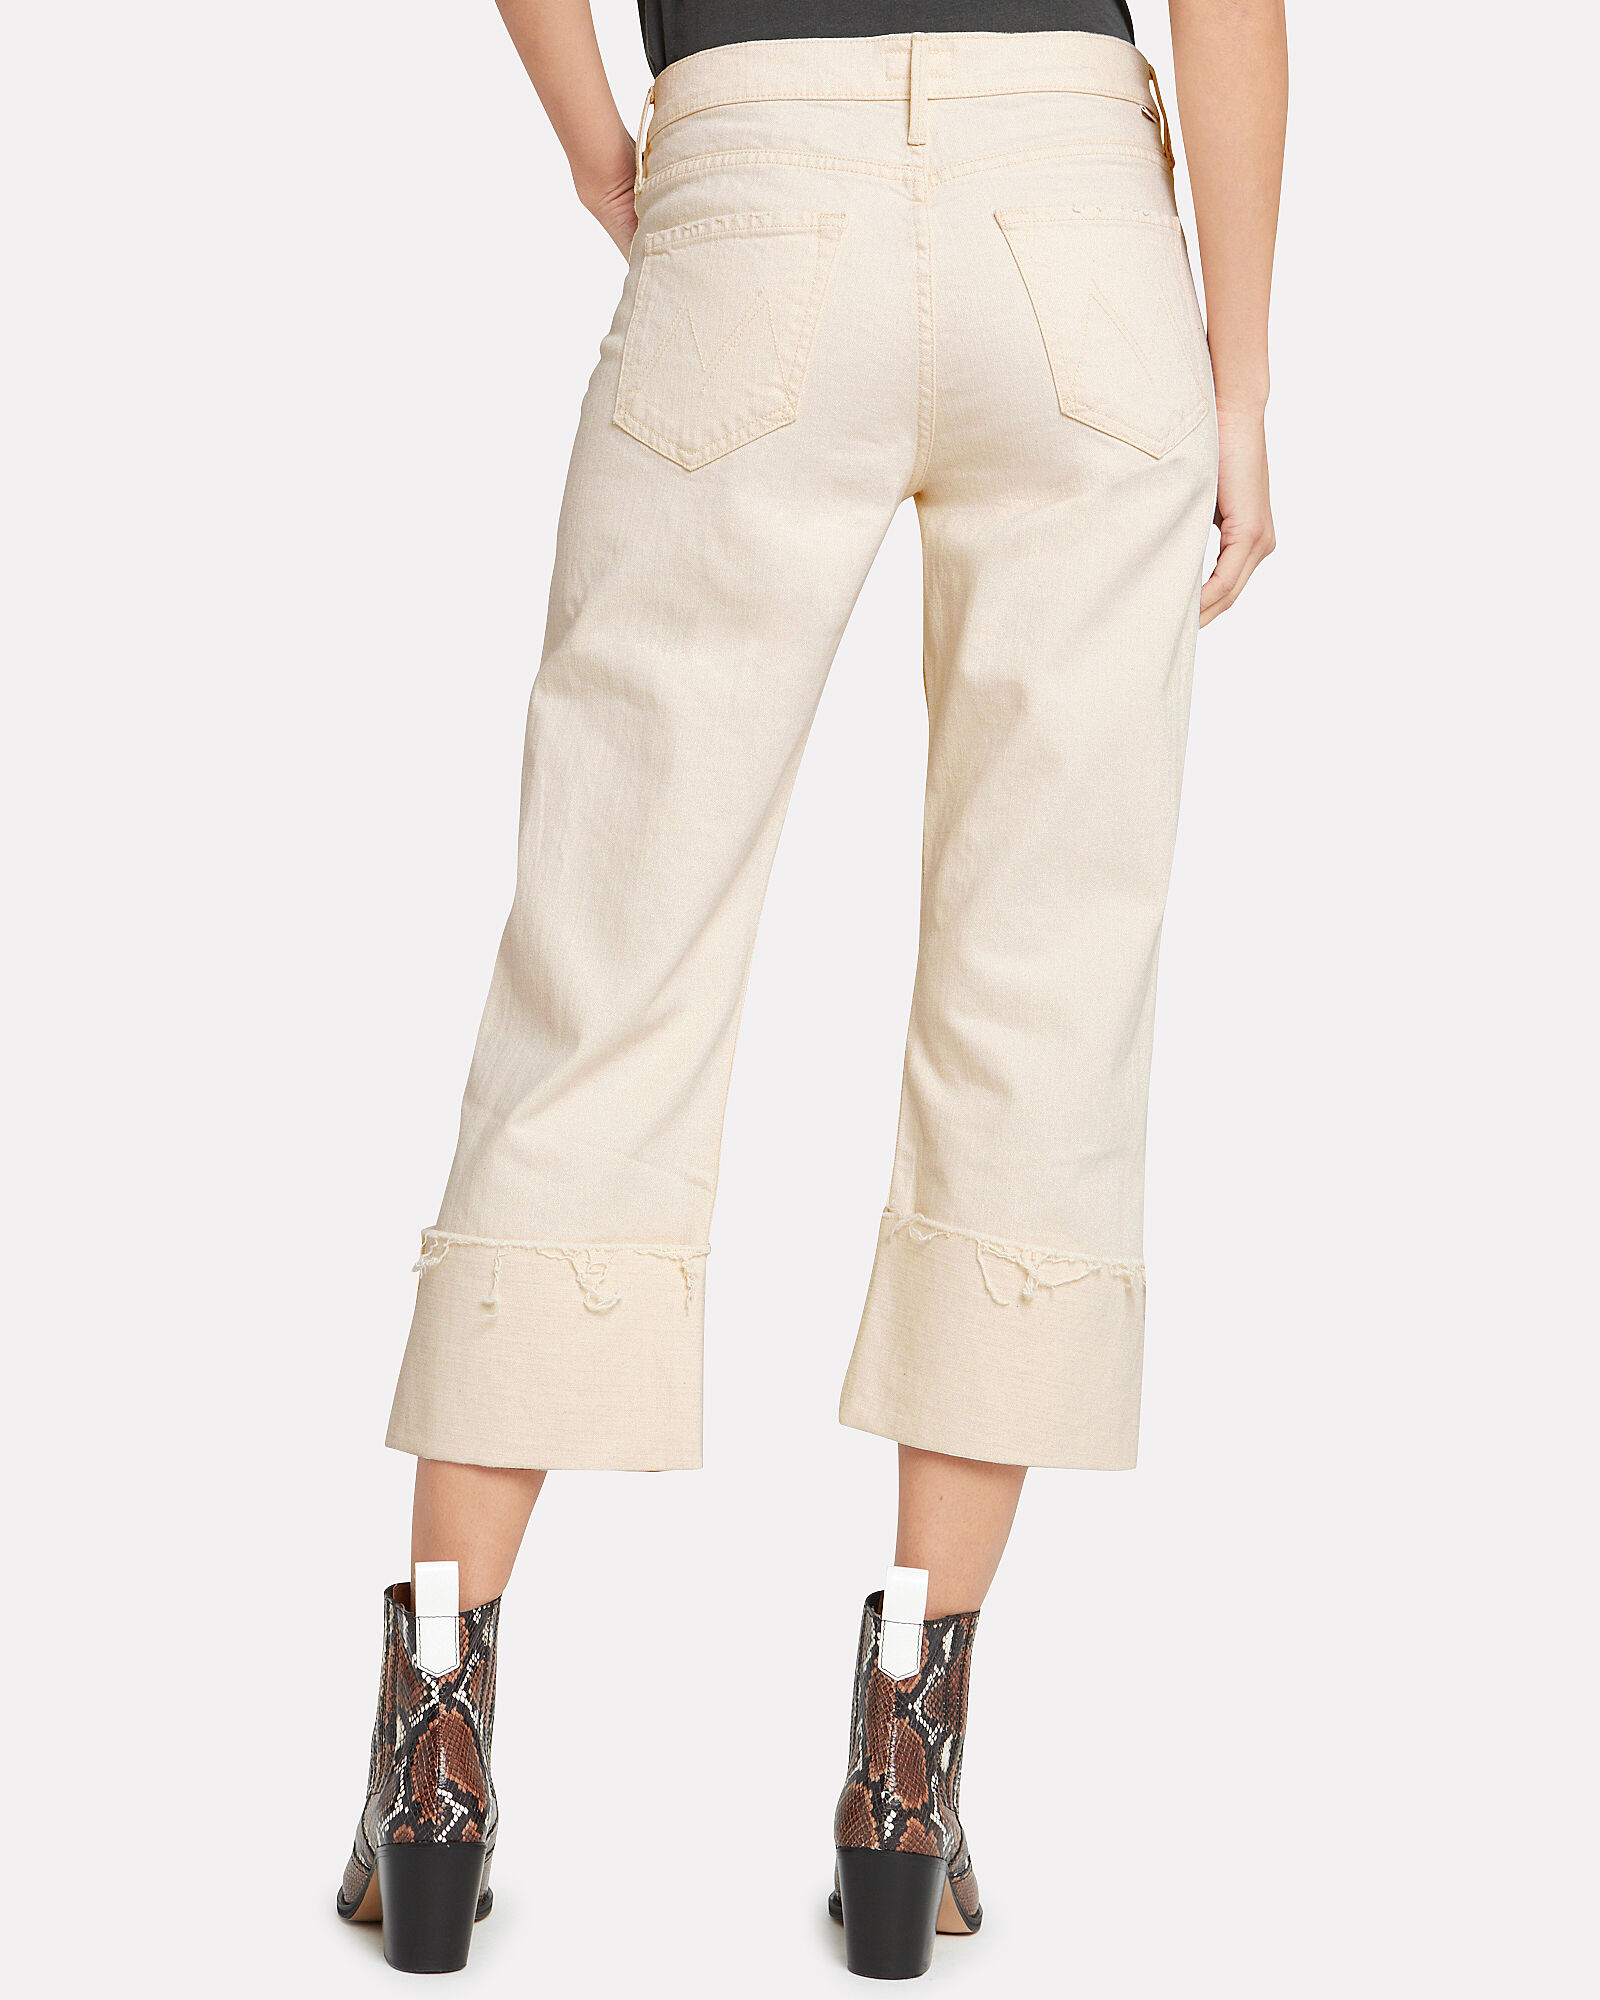 Act Natural Dusty Cuff Jeans, IVORY, hi-res